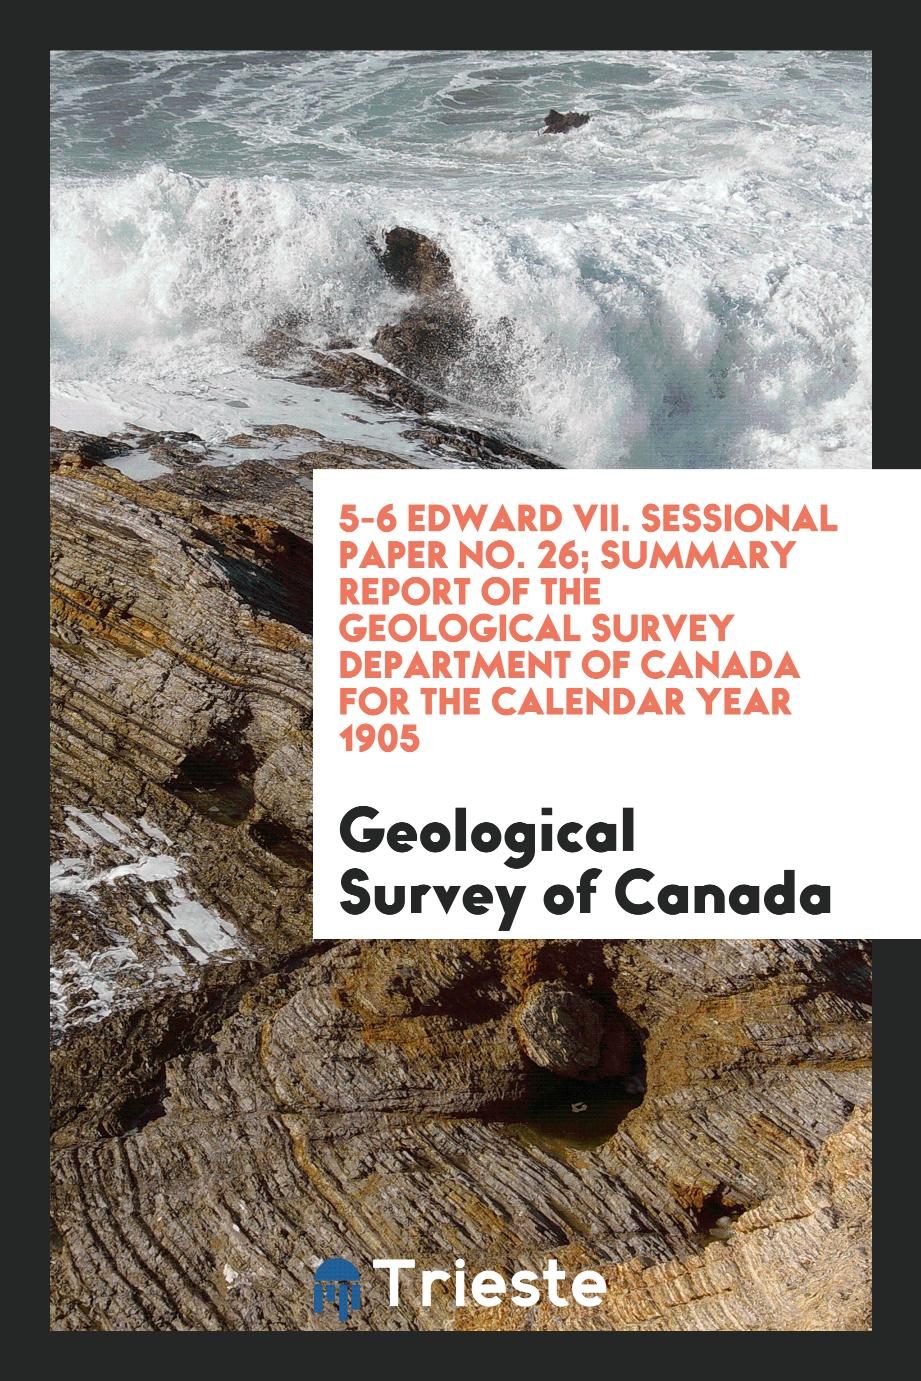 5-6 Edward VII. Sessional Paper No. 26; Summary Report of the Geological Survey Department of Canada for the Calendar Year 1905